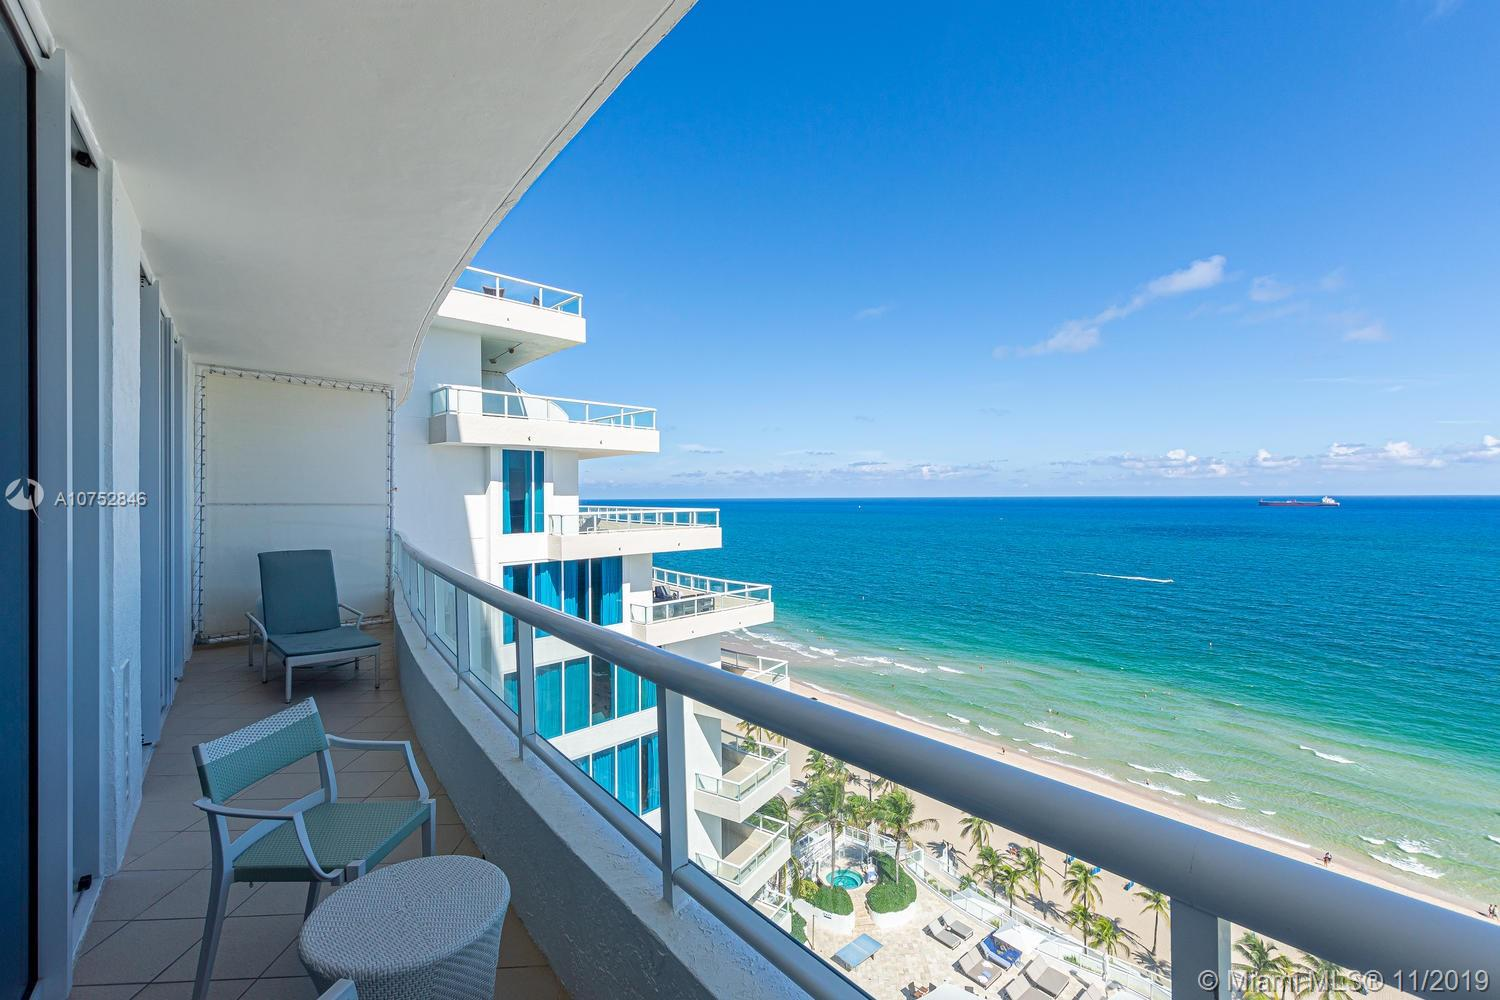 DIRECT OCEAN VIEWS FROM ALL ROOMS! BEST MOST DESIRABLE UNIT IN RITZ CARLTON. RENTED AT $6500 PER A MONTH TILL APRIL 2021- ONE BEDROOM / 1.5 BATHROOM SUITE IN THE LUXURY RITZ-CARLTON HOTEL WITH DIRECT OCEAN VIEW. NOT ON A CONDO HOTEL PROGRAM. UNIT OWNER STAYS OFF THE SEASON AND RENTS DURING SEASON.  SUPER HOT DEAL IN 5 STAR RITZ CARLTON!!! BRING ALL OFFERS, SELLERS FINCNAING IS AVAILBLE AT 50% DOWN. CASH FLOW INVESTMENT - TEXT THE AGENT FOR MORE INFO.